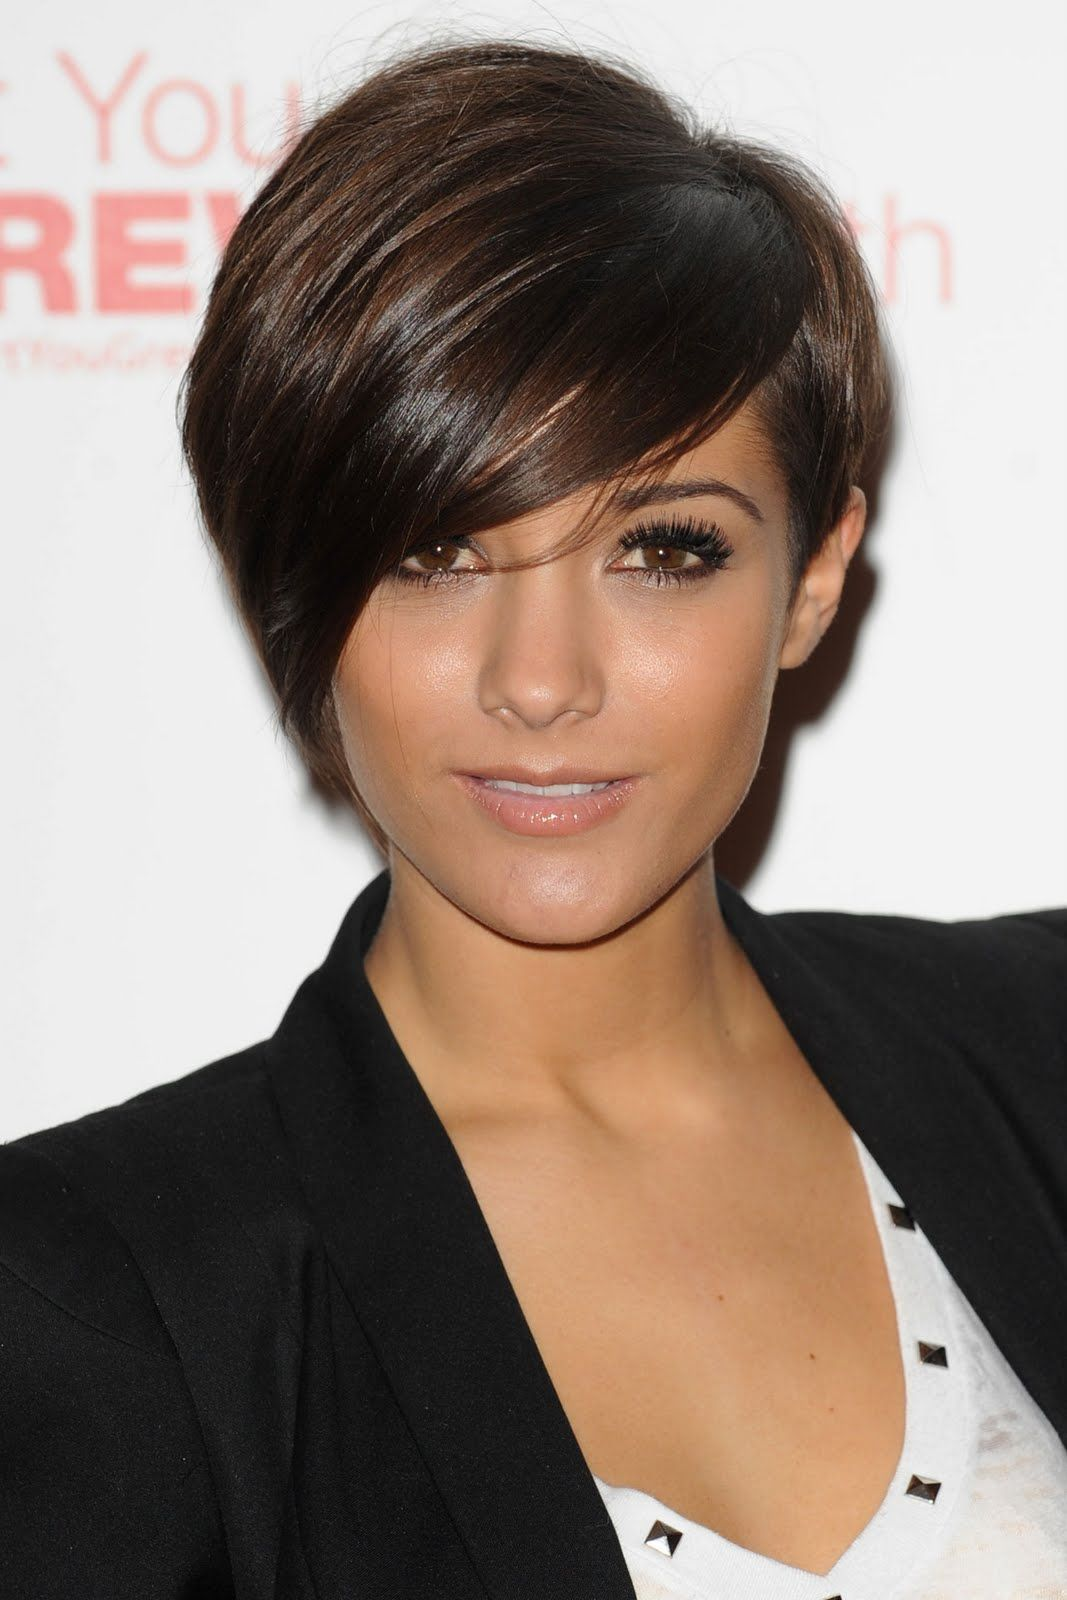 Hairstyle Pictures Of Frankie Sandford Frankie Sandford Was Born On